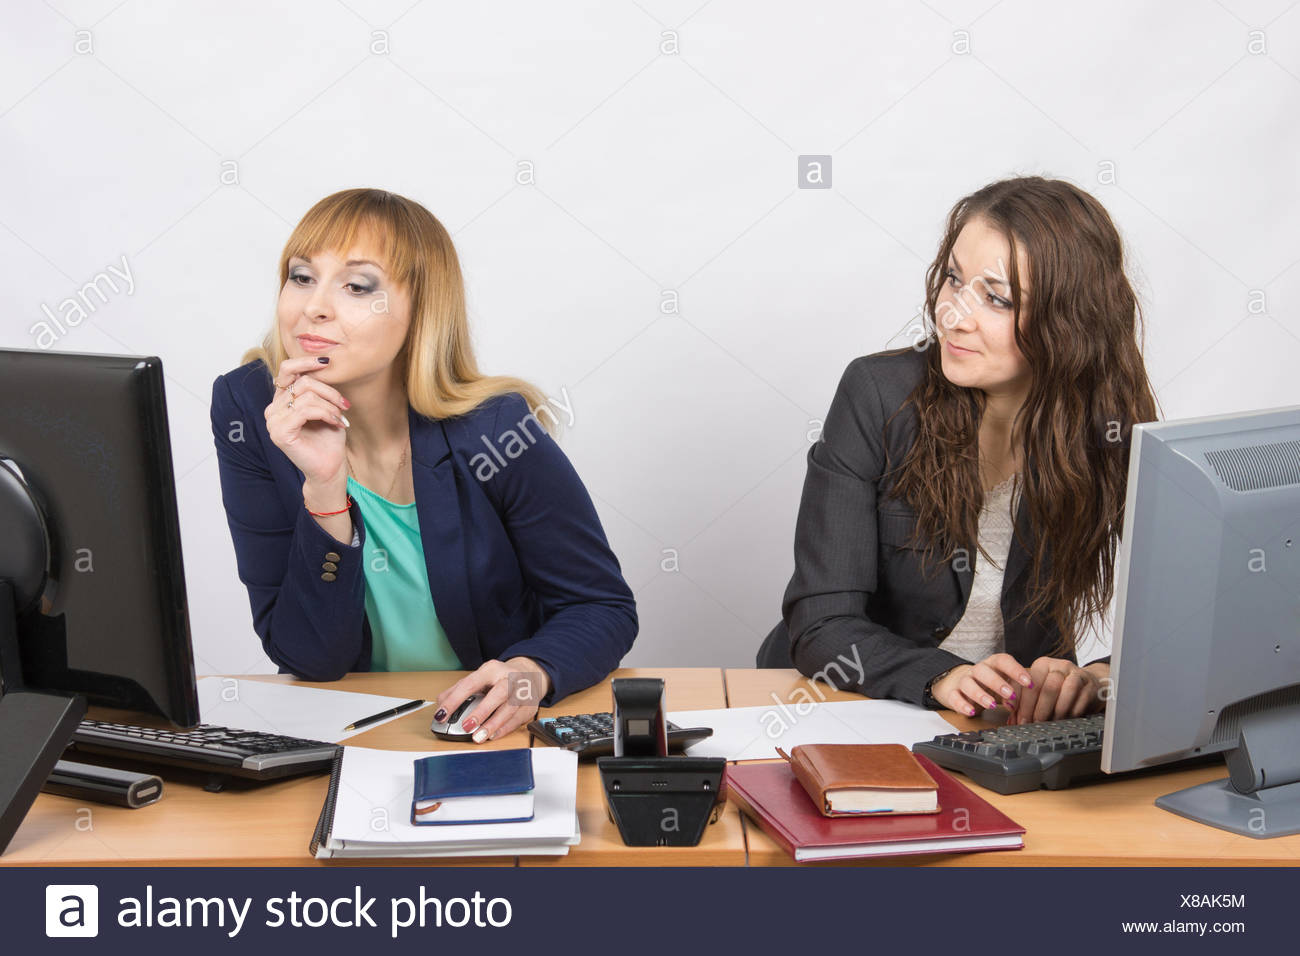 Office worker looking with distaste at the colleague sitting next to staring at a computer monitor - Stock Image